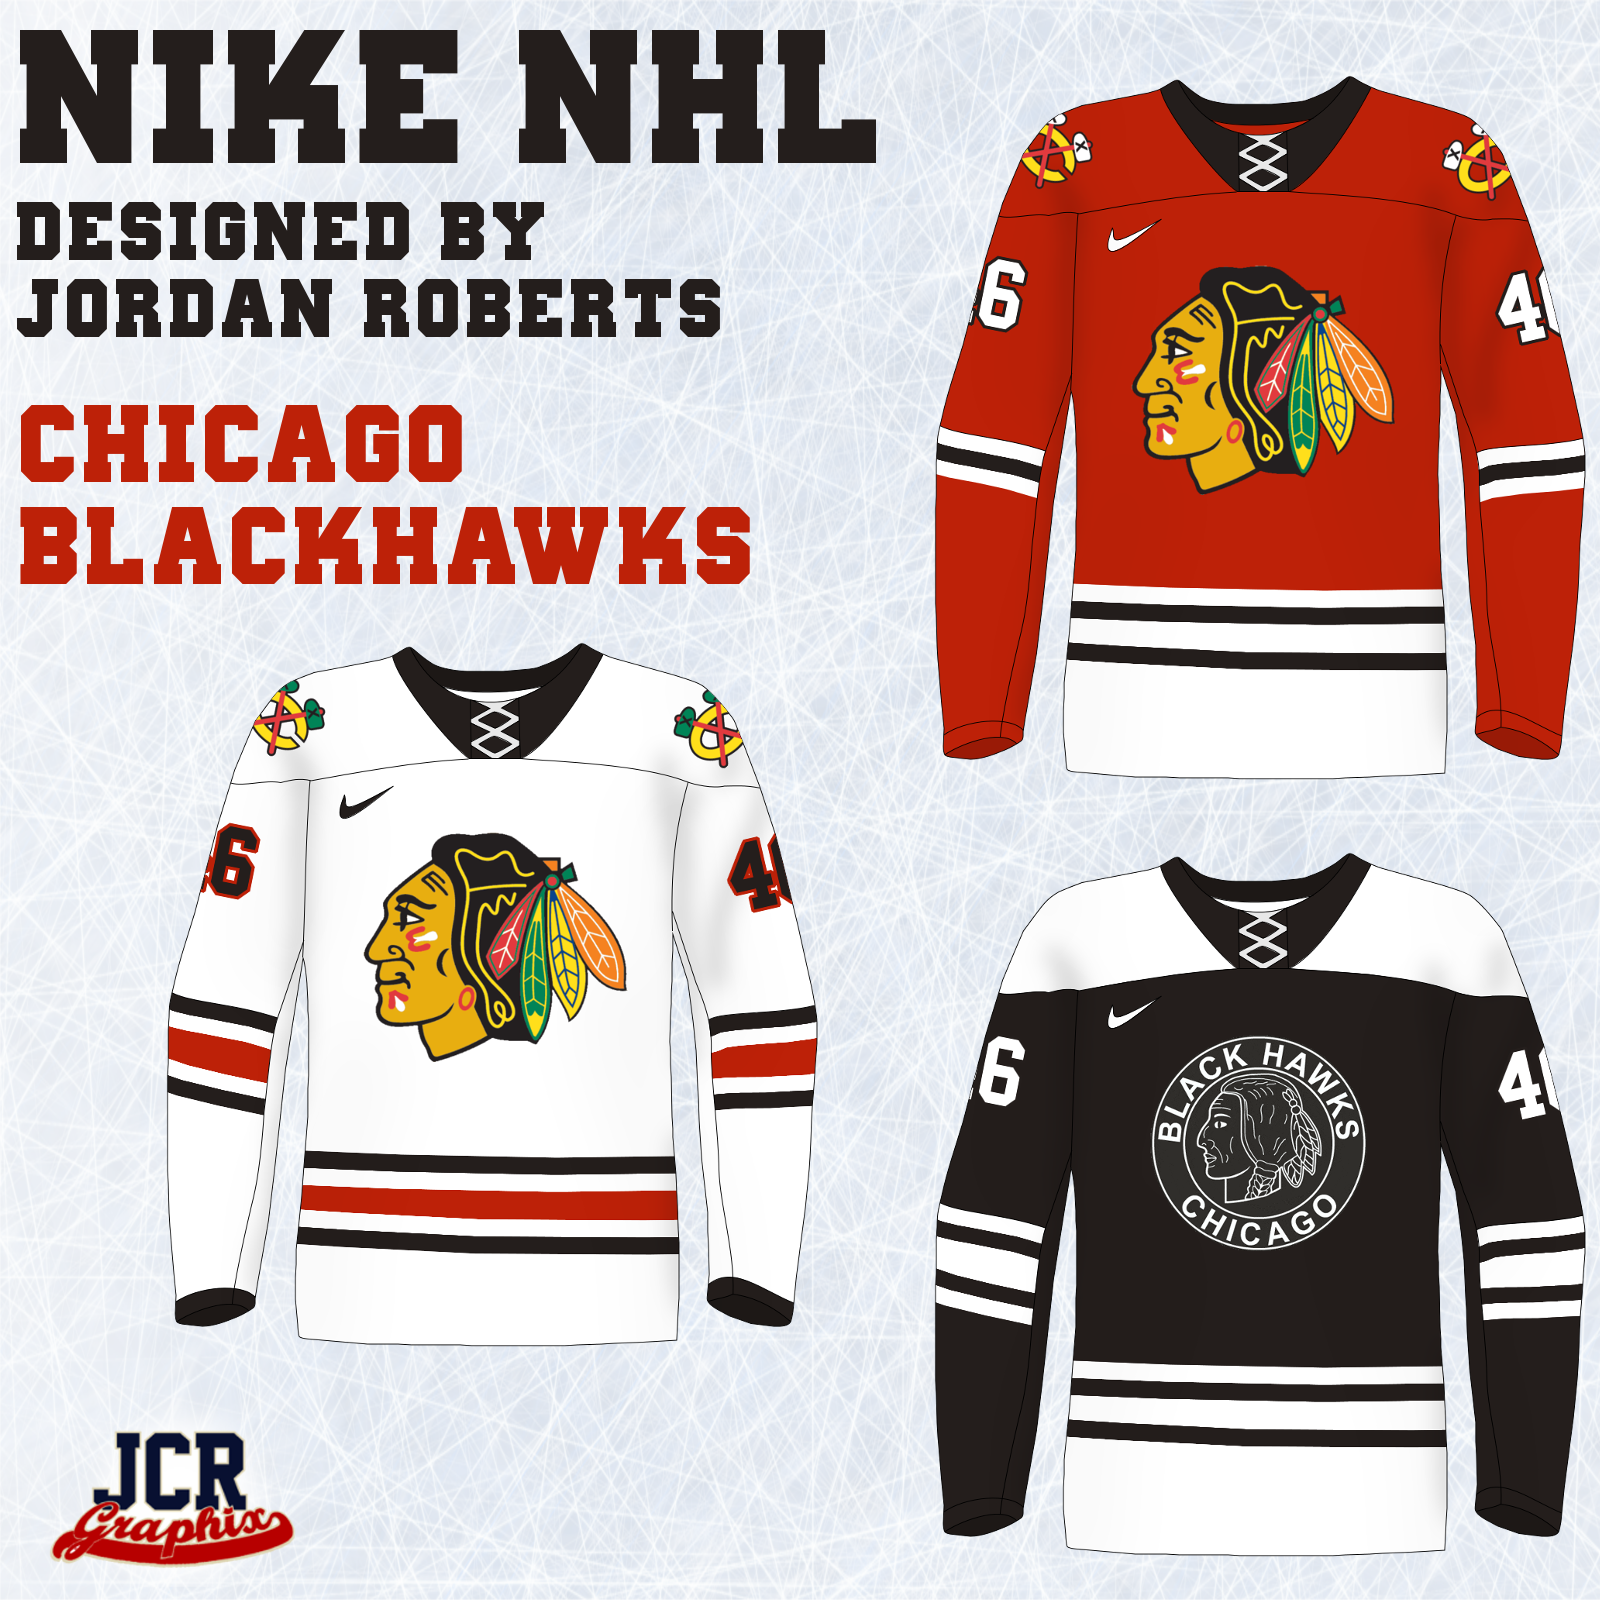 online store c72bd 4ca60 NHL Nike Jerseys - Wild and Blue Jackets added - Concepts ...